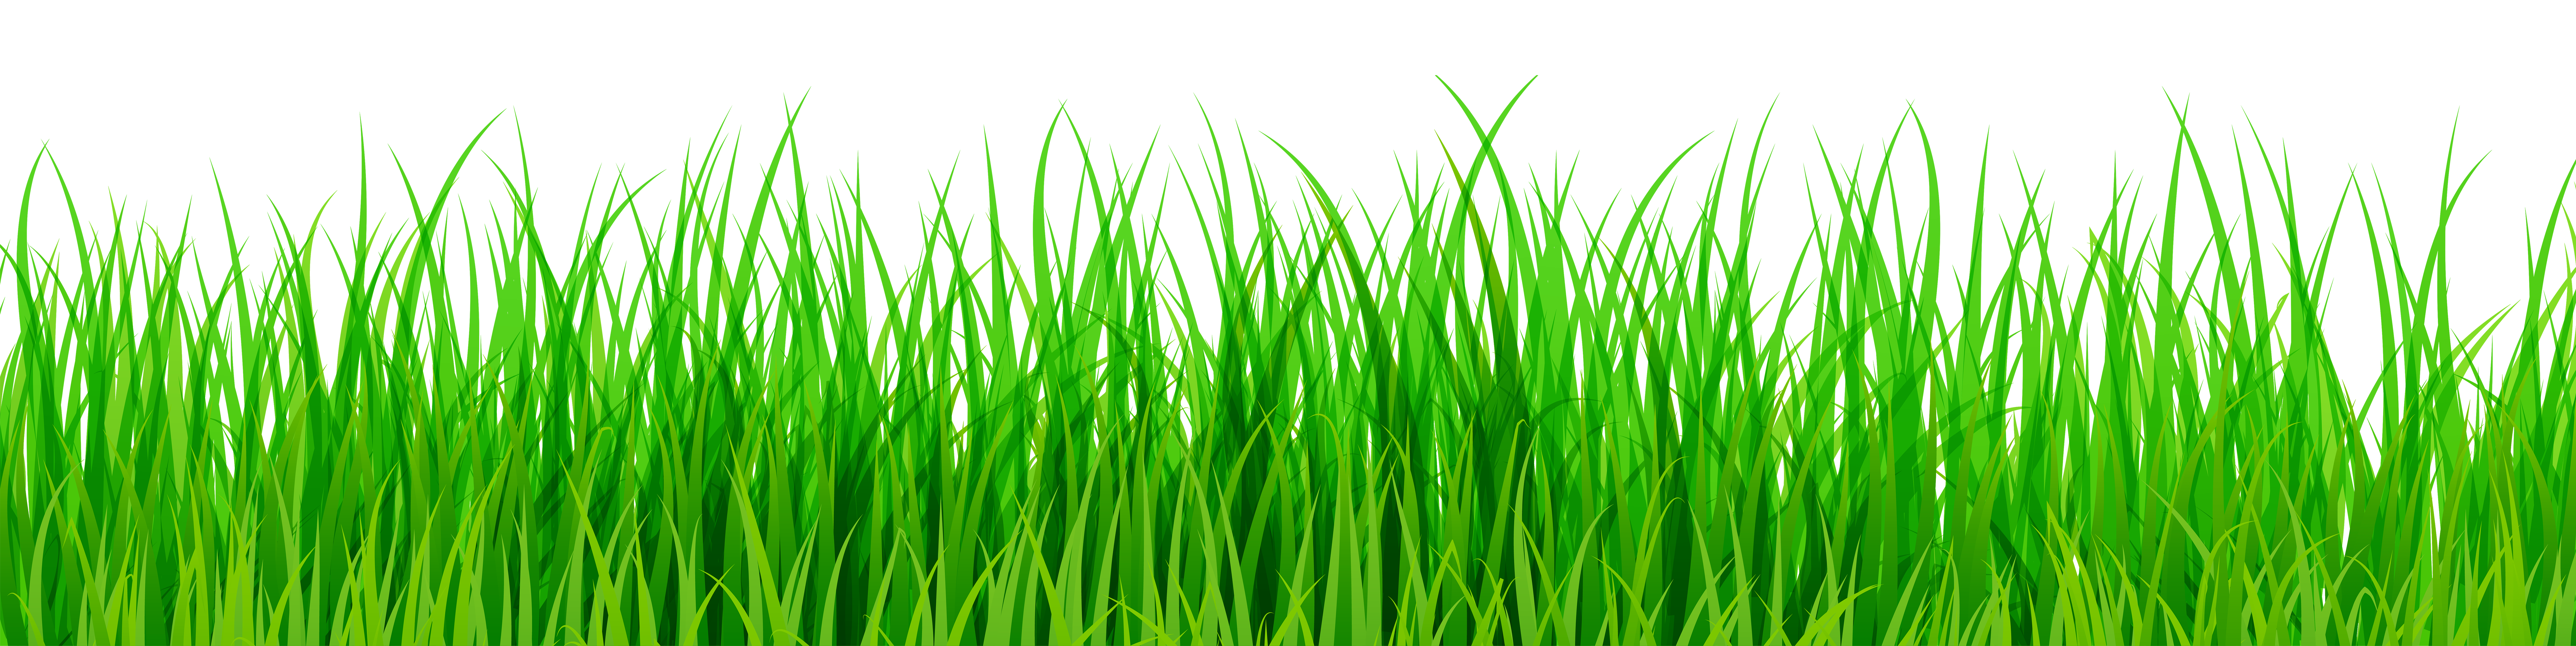 Football grass clipart image library download green grass clipart grass clipart - Clip Art. Net image library download